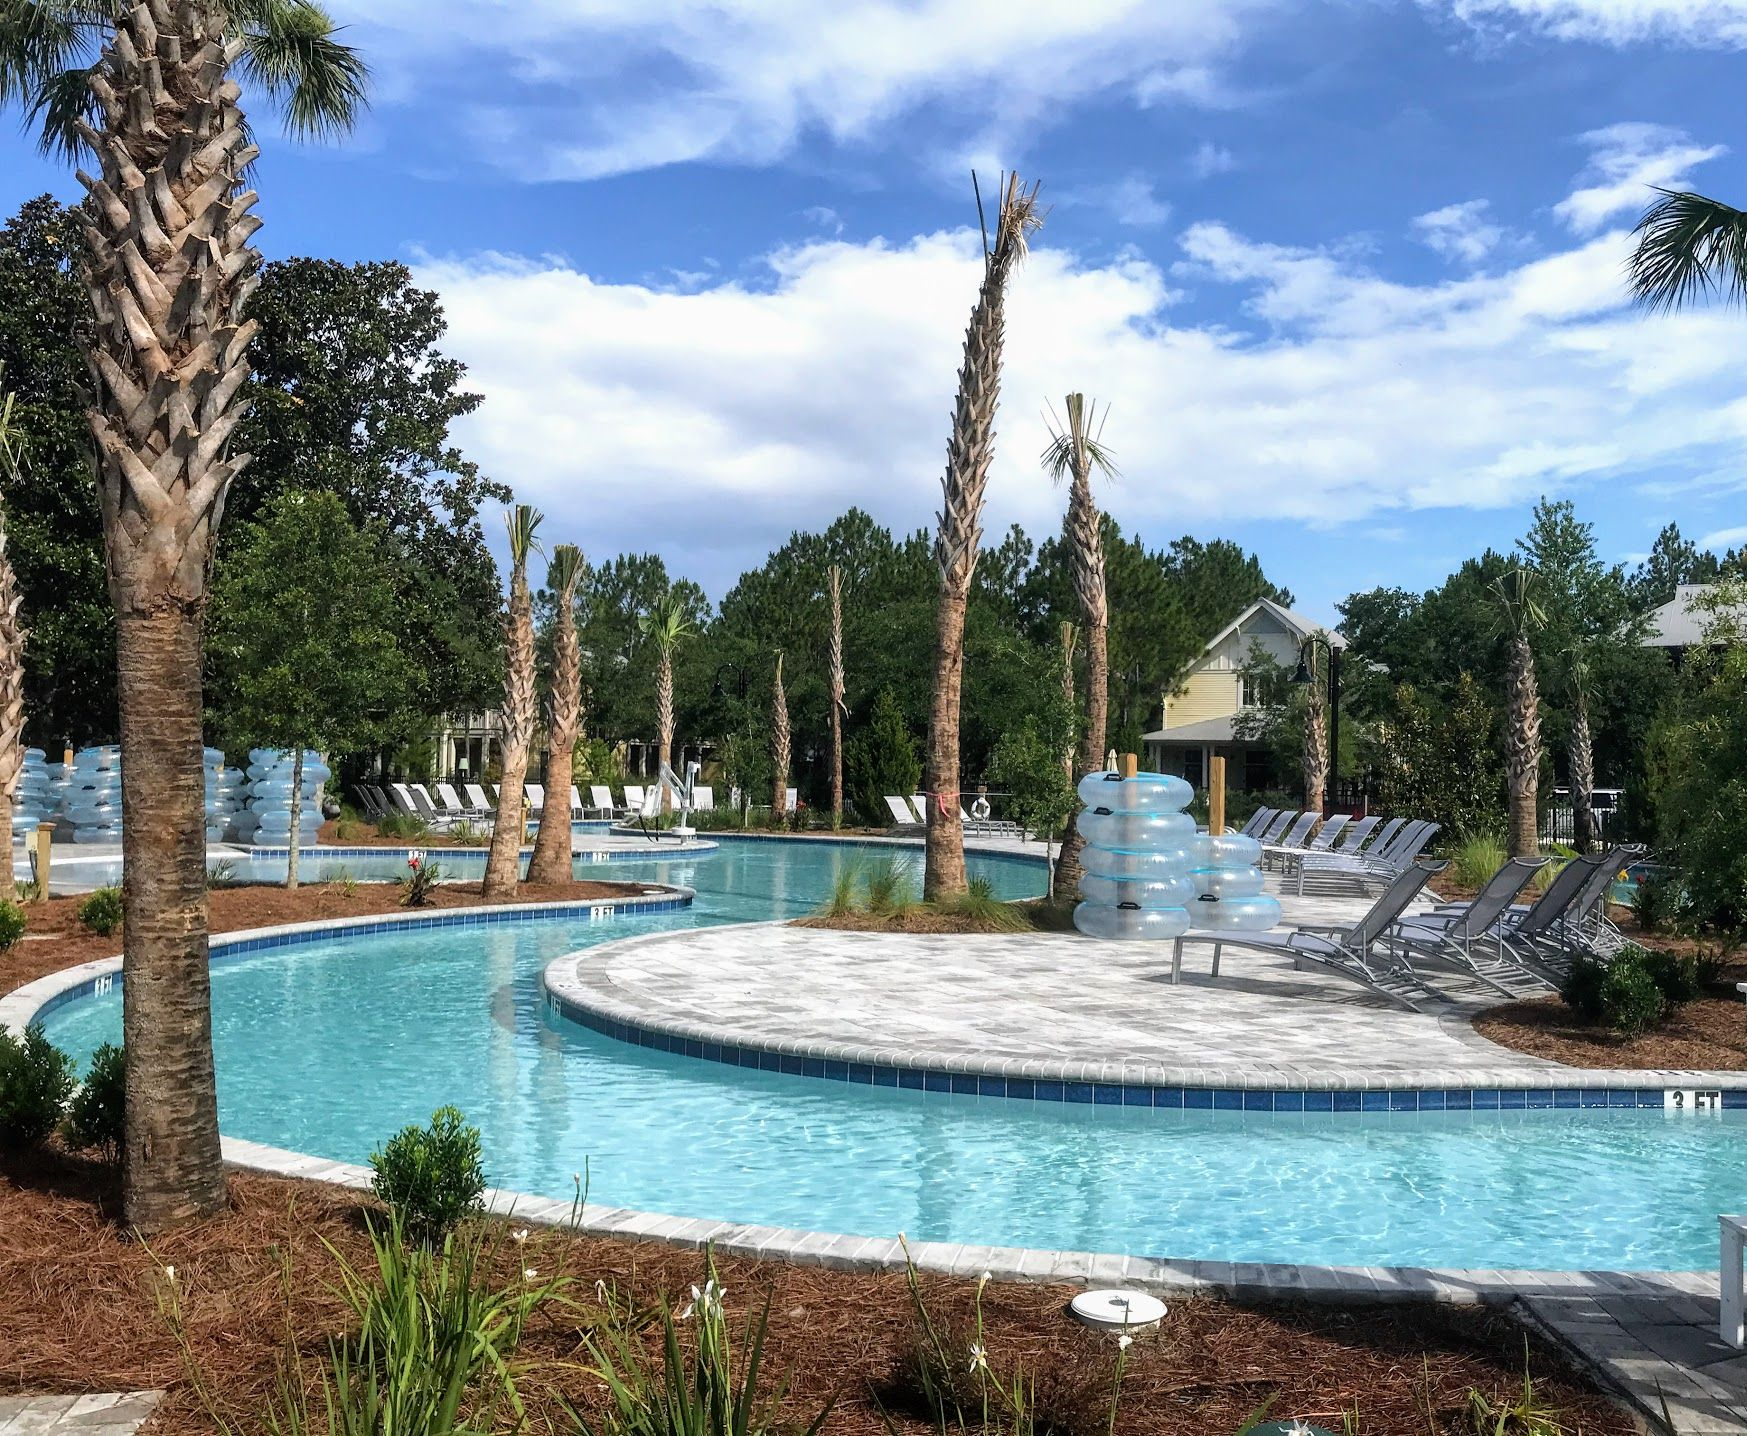 Meetings And Events At Watercolor Inn Resort Destin South